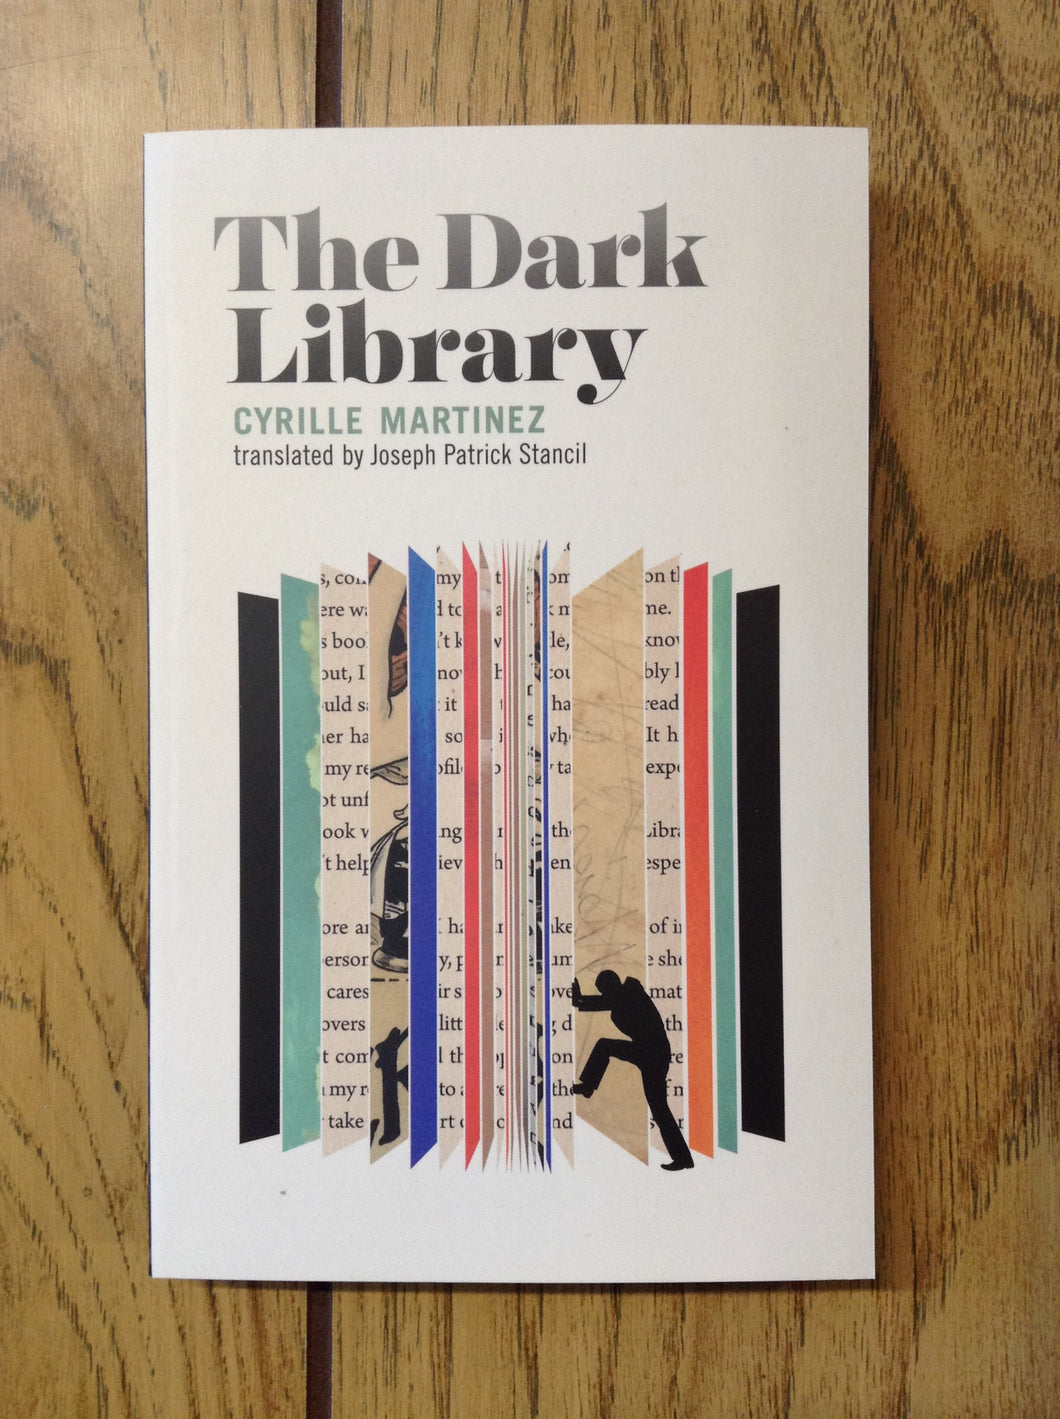 The Dark Library